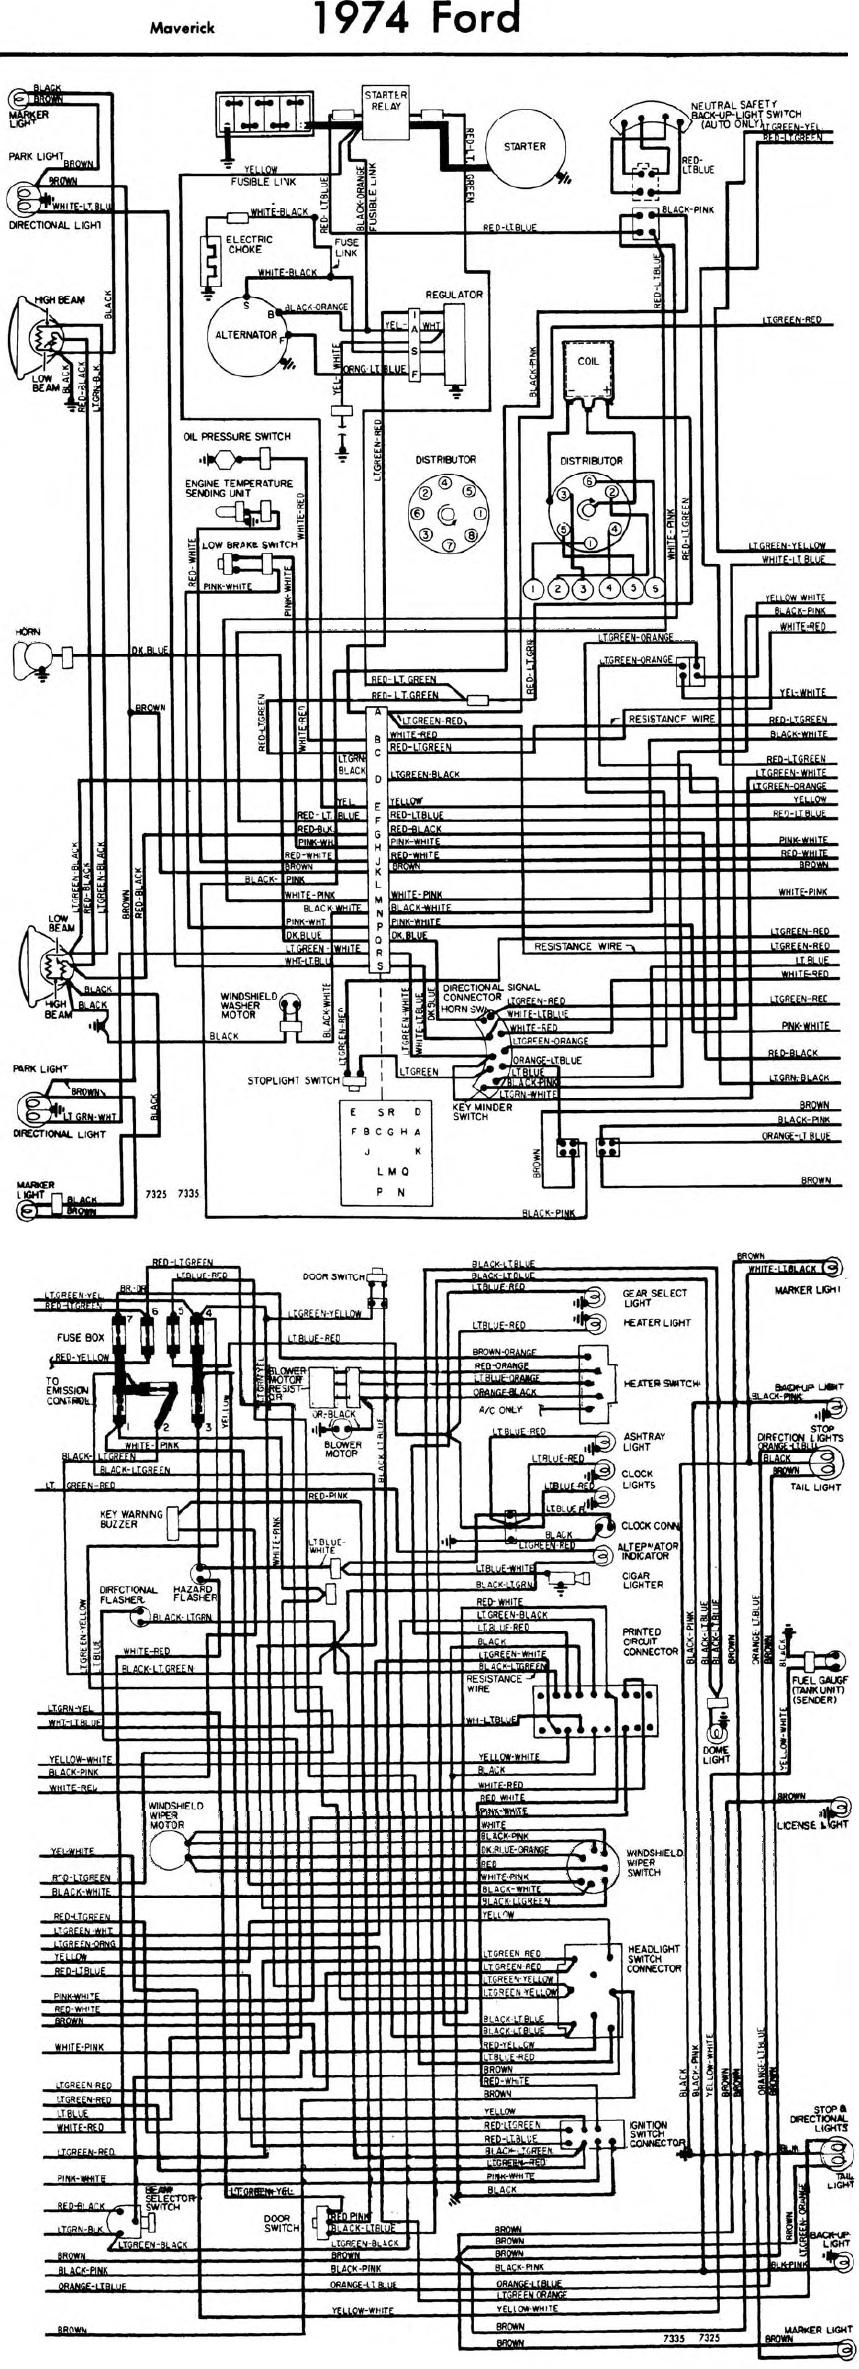 1974 Ford Maverick Alternator Wiring Diagram Illustration Of 1975 Portal U2022 Rh Graphiko Co 1g